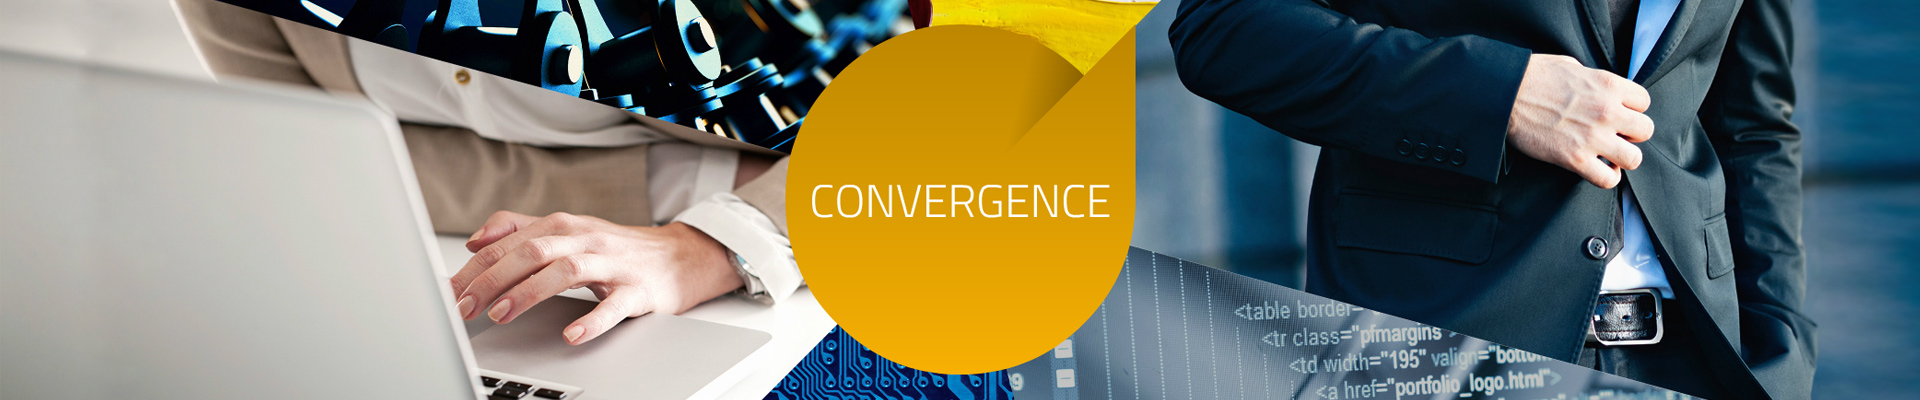 MakoLab prepares for new business challenges. The strategy of convergence and a new website